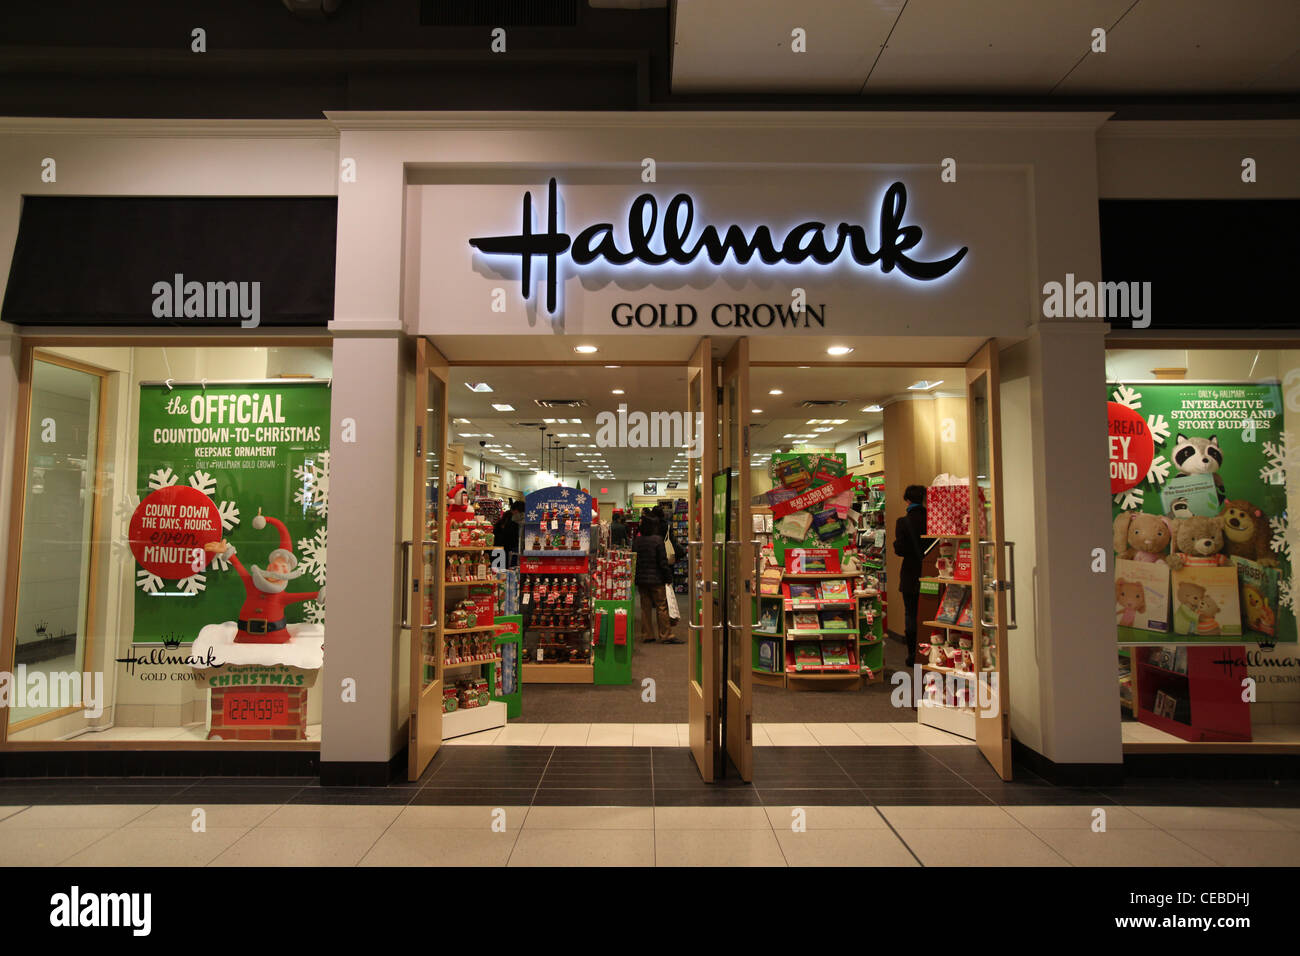 Hallmark Store In Christmas At Toronto Eaton Centre Canada